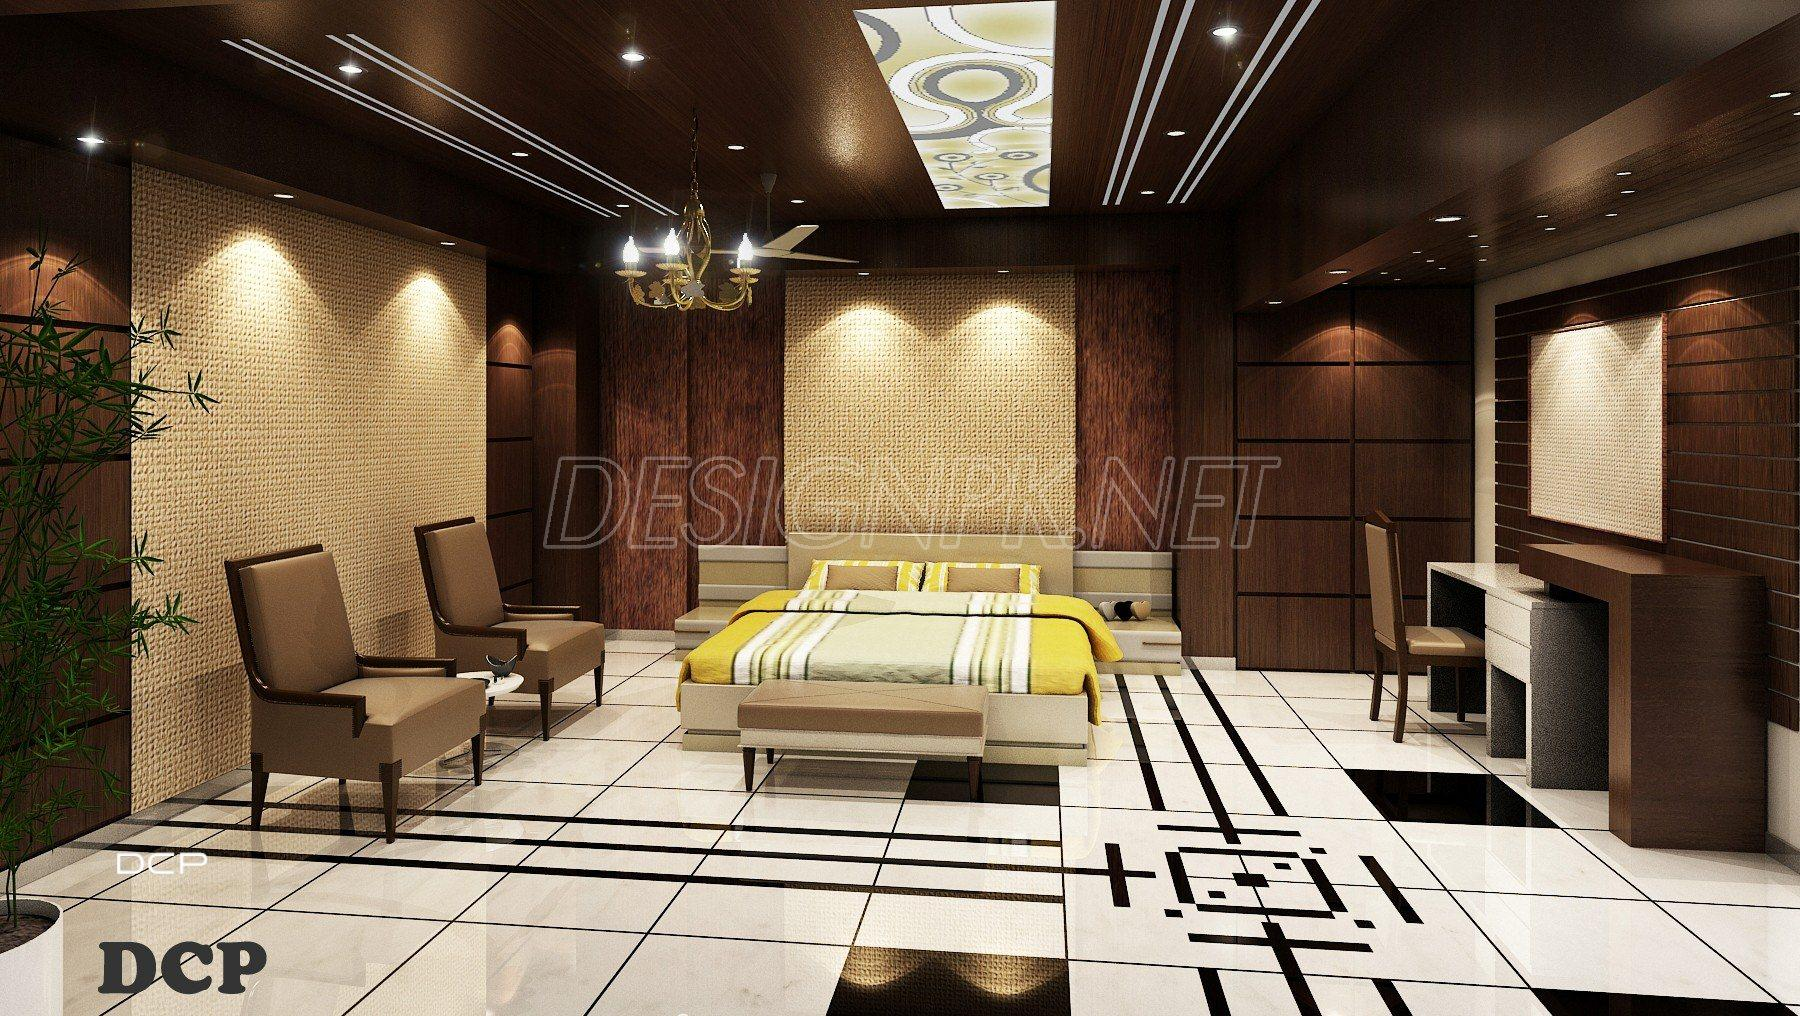 Bedroom Interior Design Dcp Pakistan 2 Designpk Net Dcp